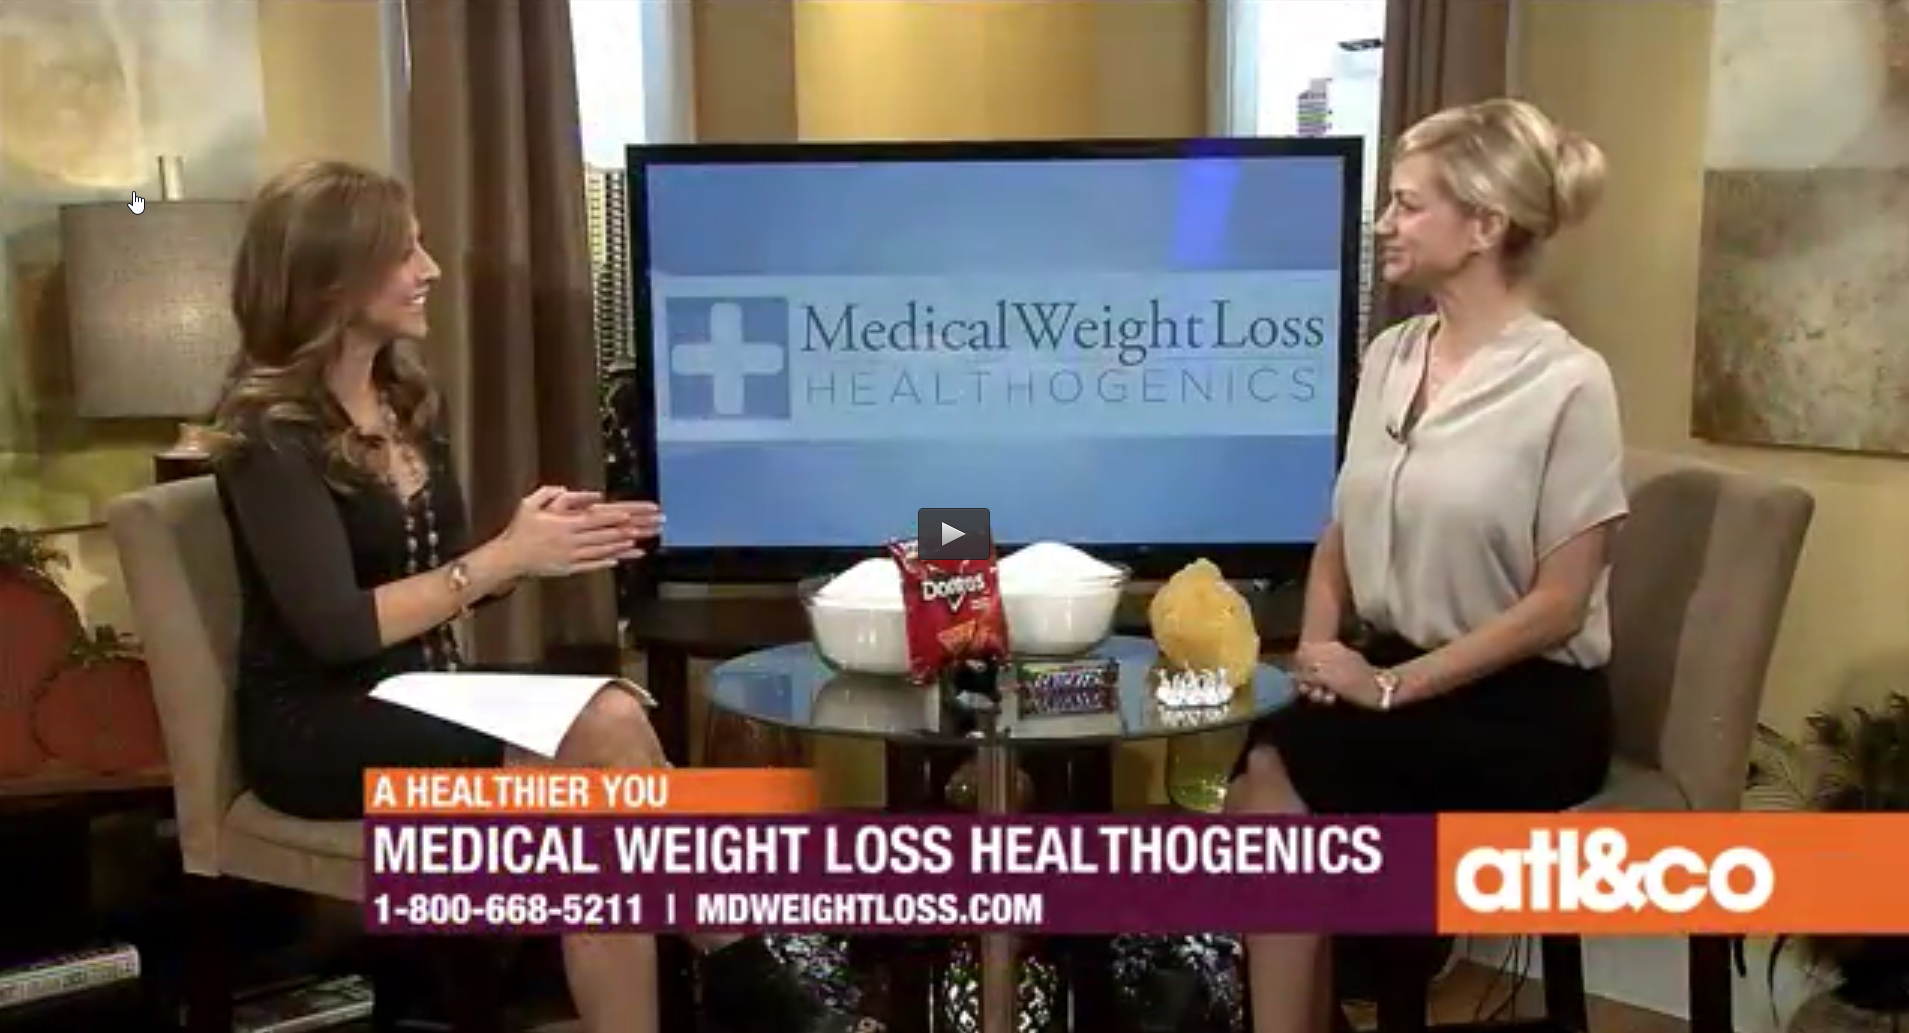 11alive.com | Medical Weight Loss by Healthogenics (7/18/2017)